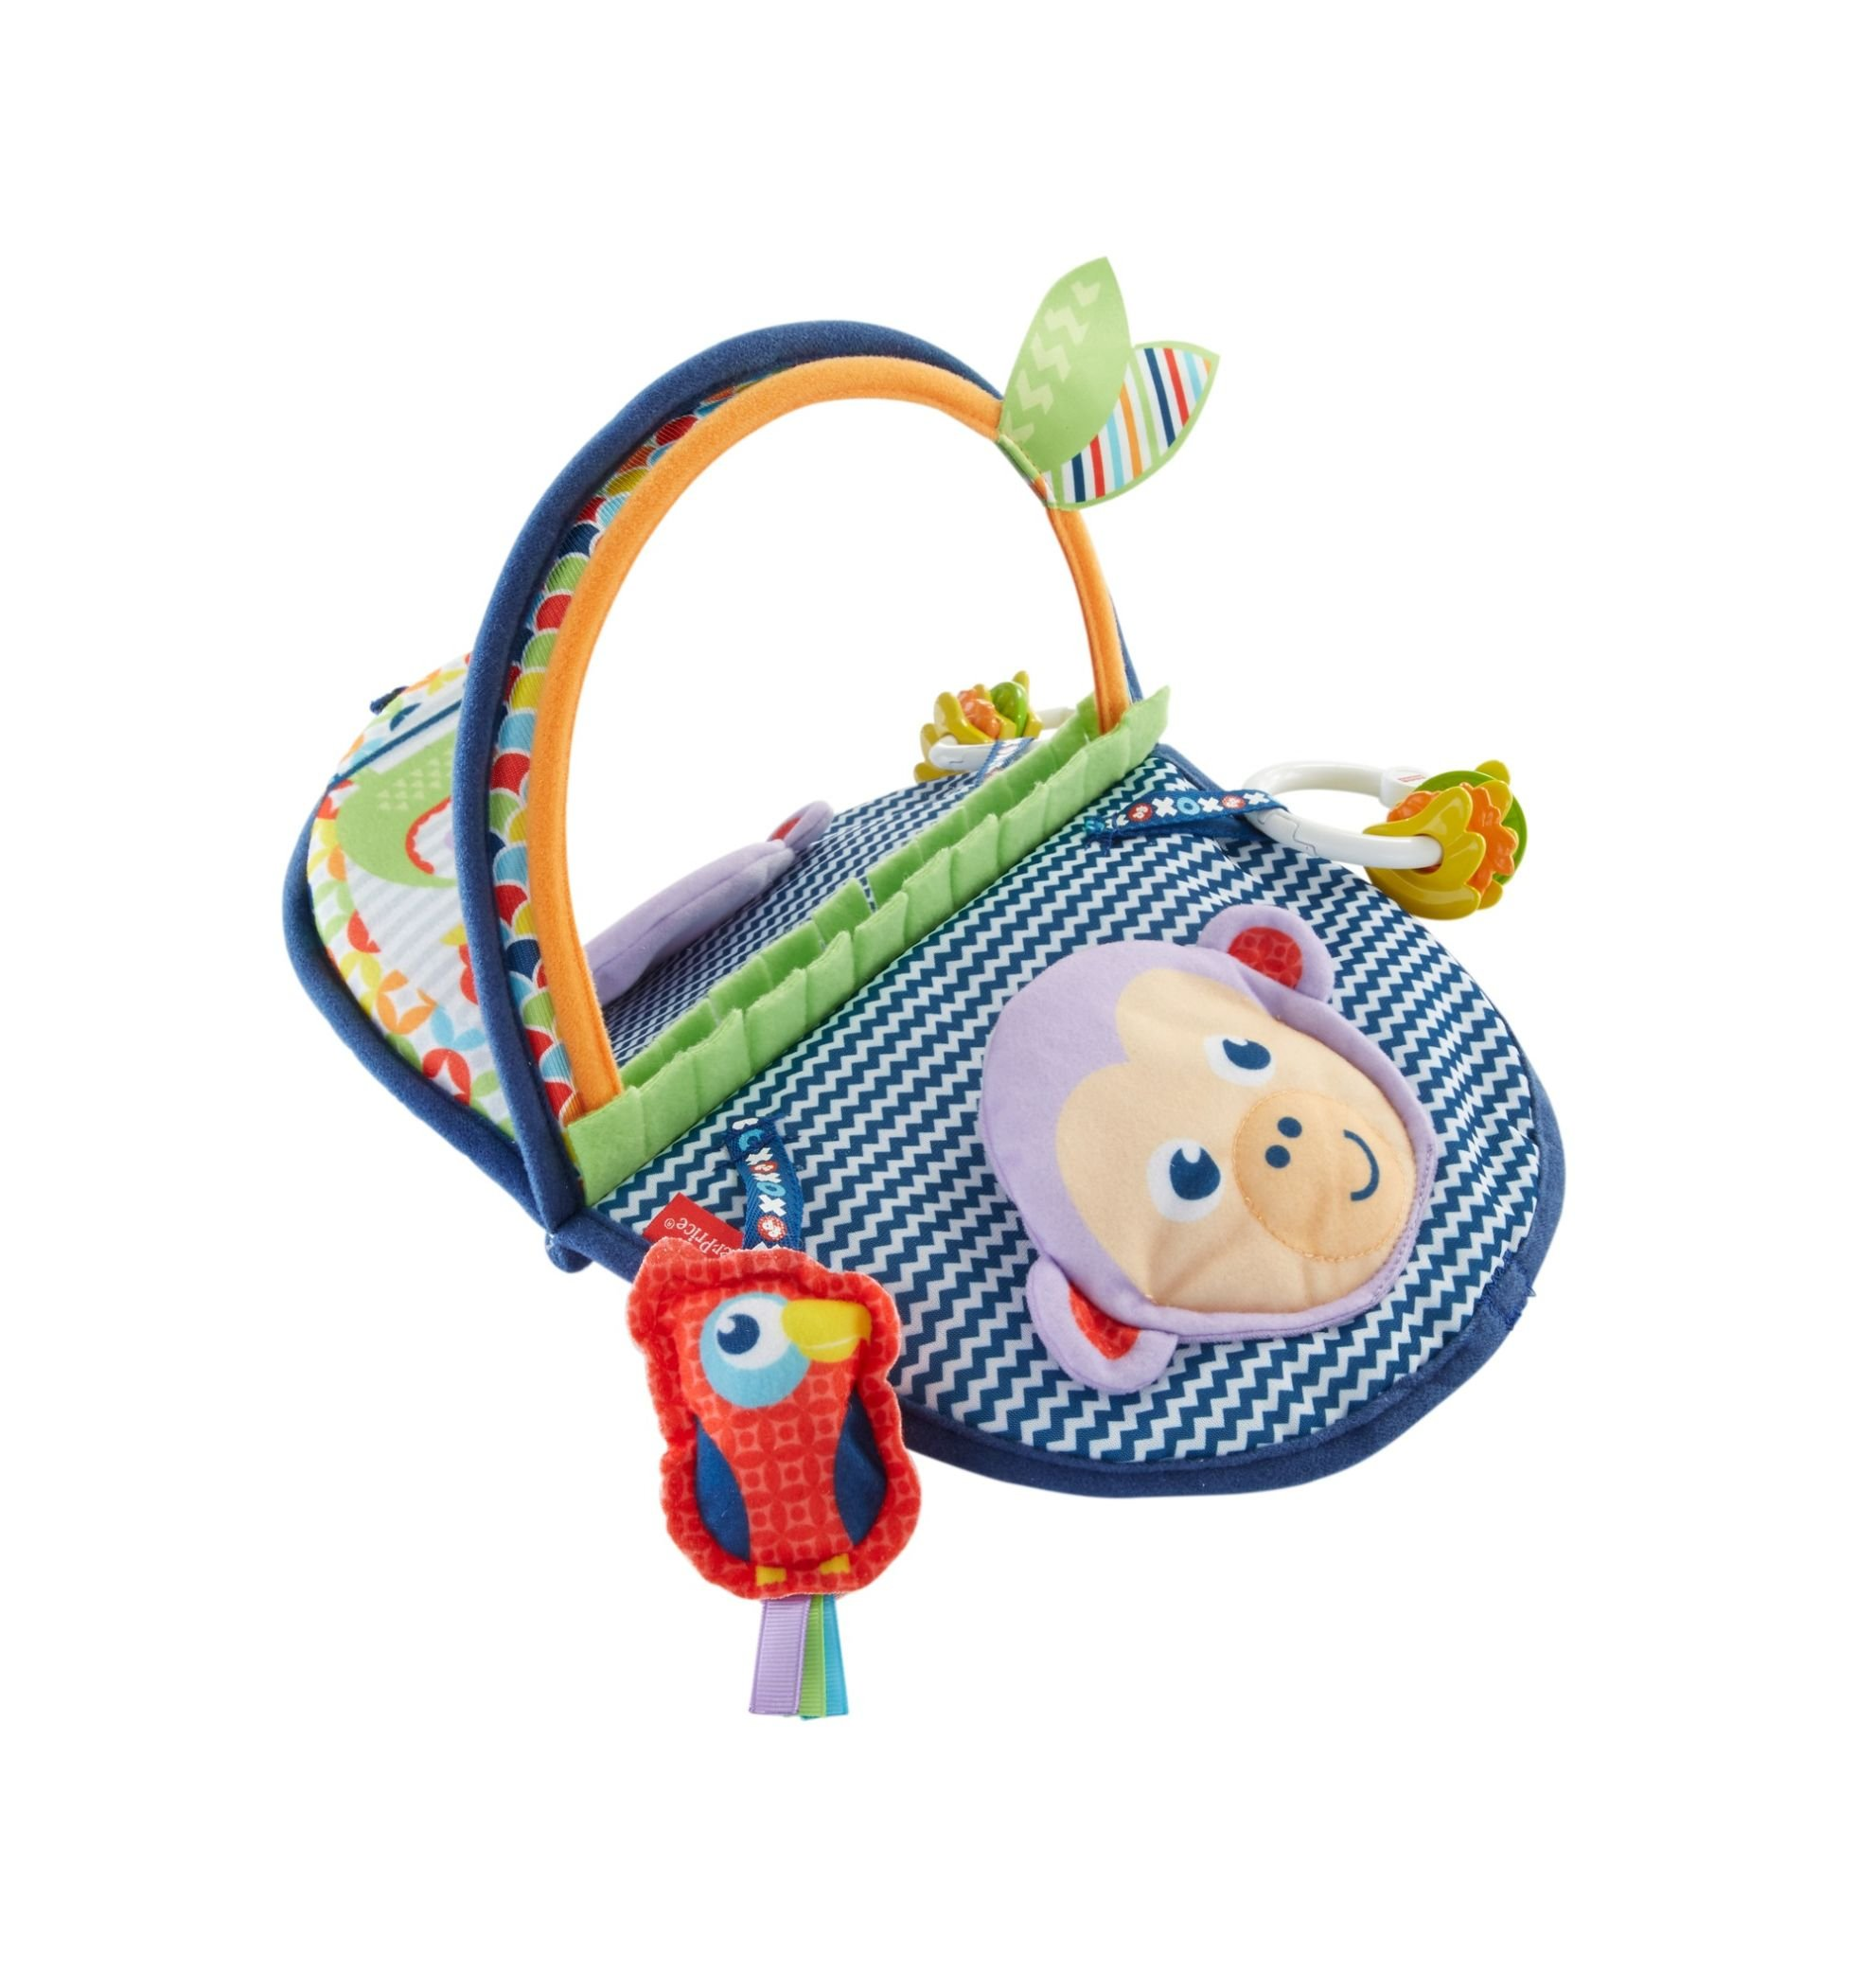 Fisher-Price Monkey Mirror, New-born Tummy Time and Sit Sensory Toy with Textures and Colours, Suitable from Birth 1